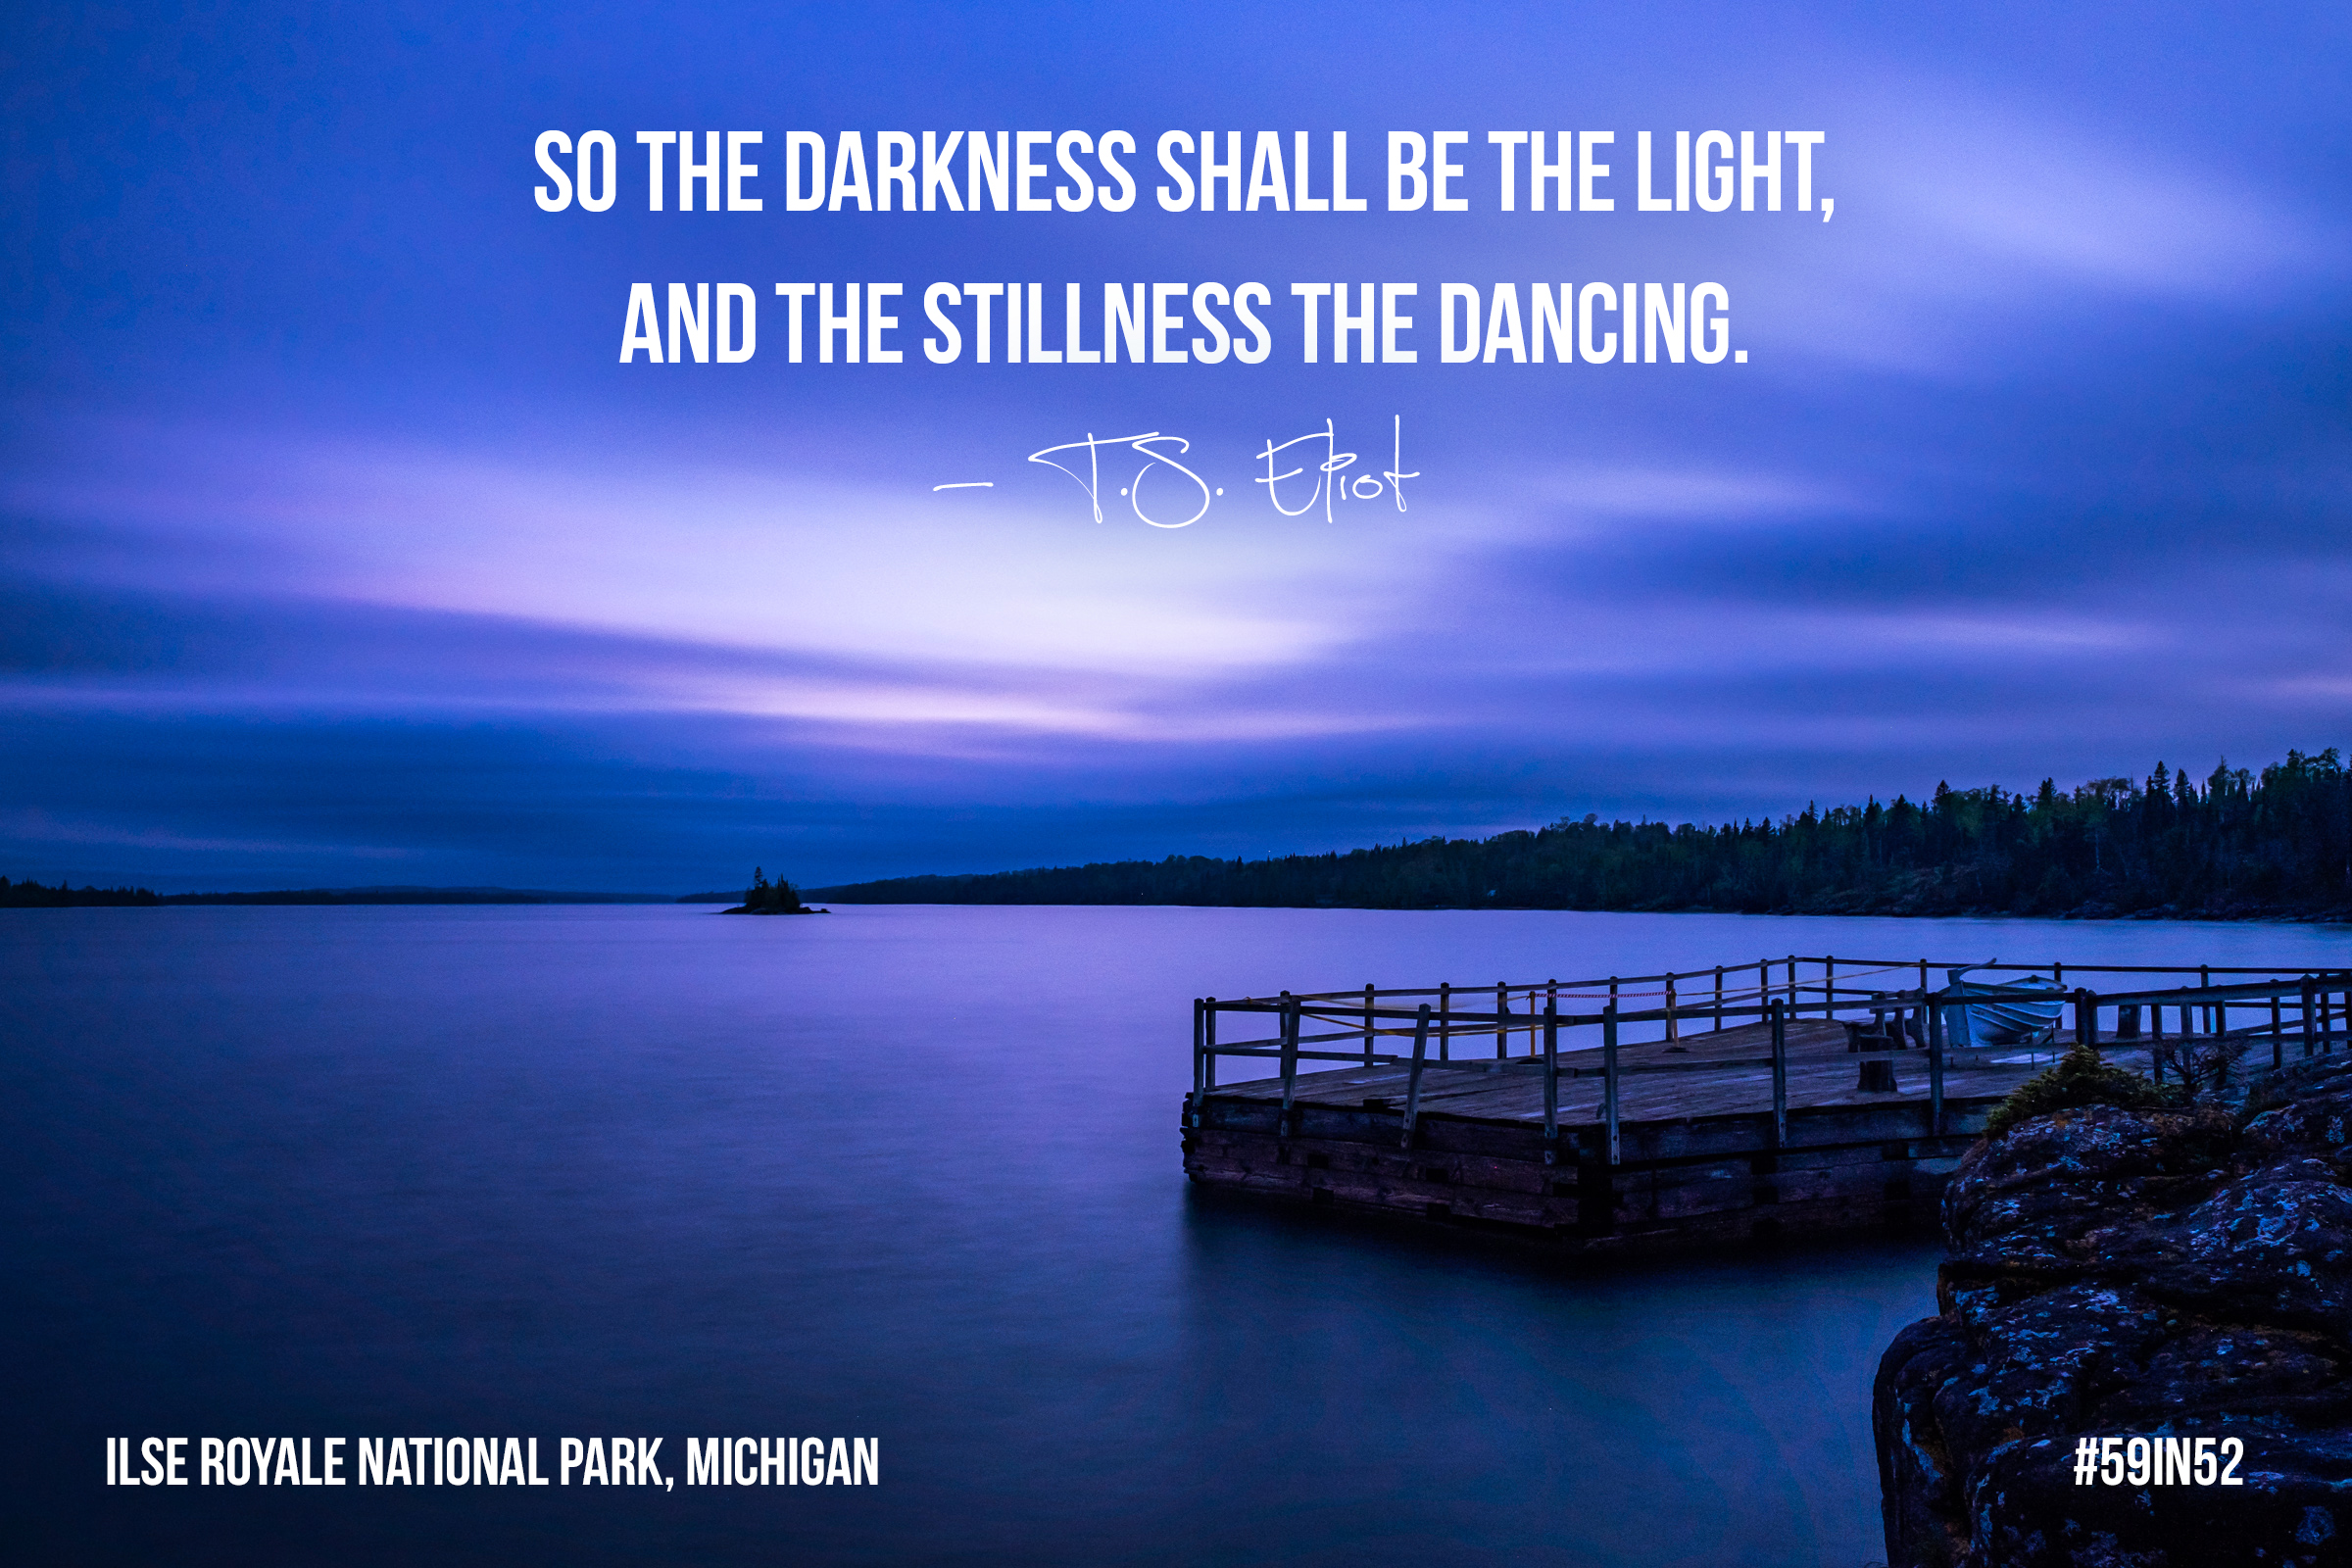 "'So the darkness shall be the light, and the stillness the dancing."" - T.S. Eliot"